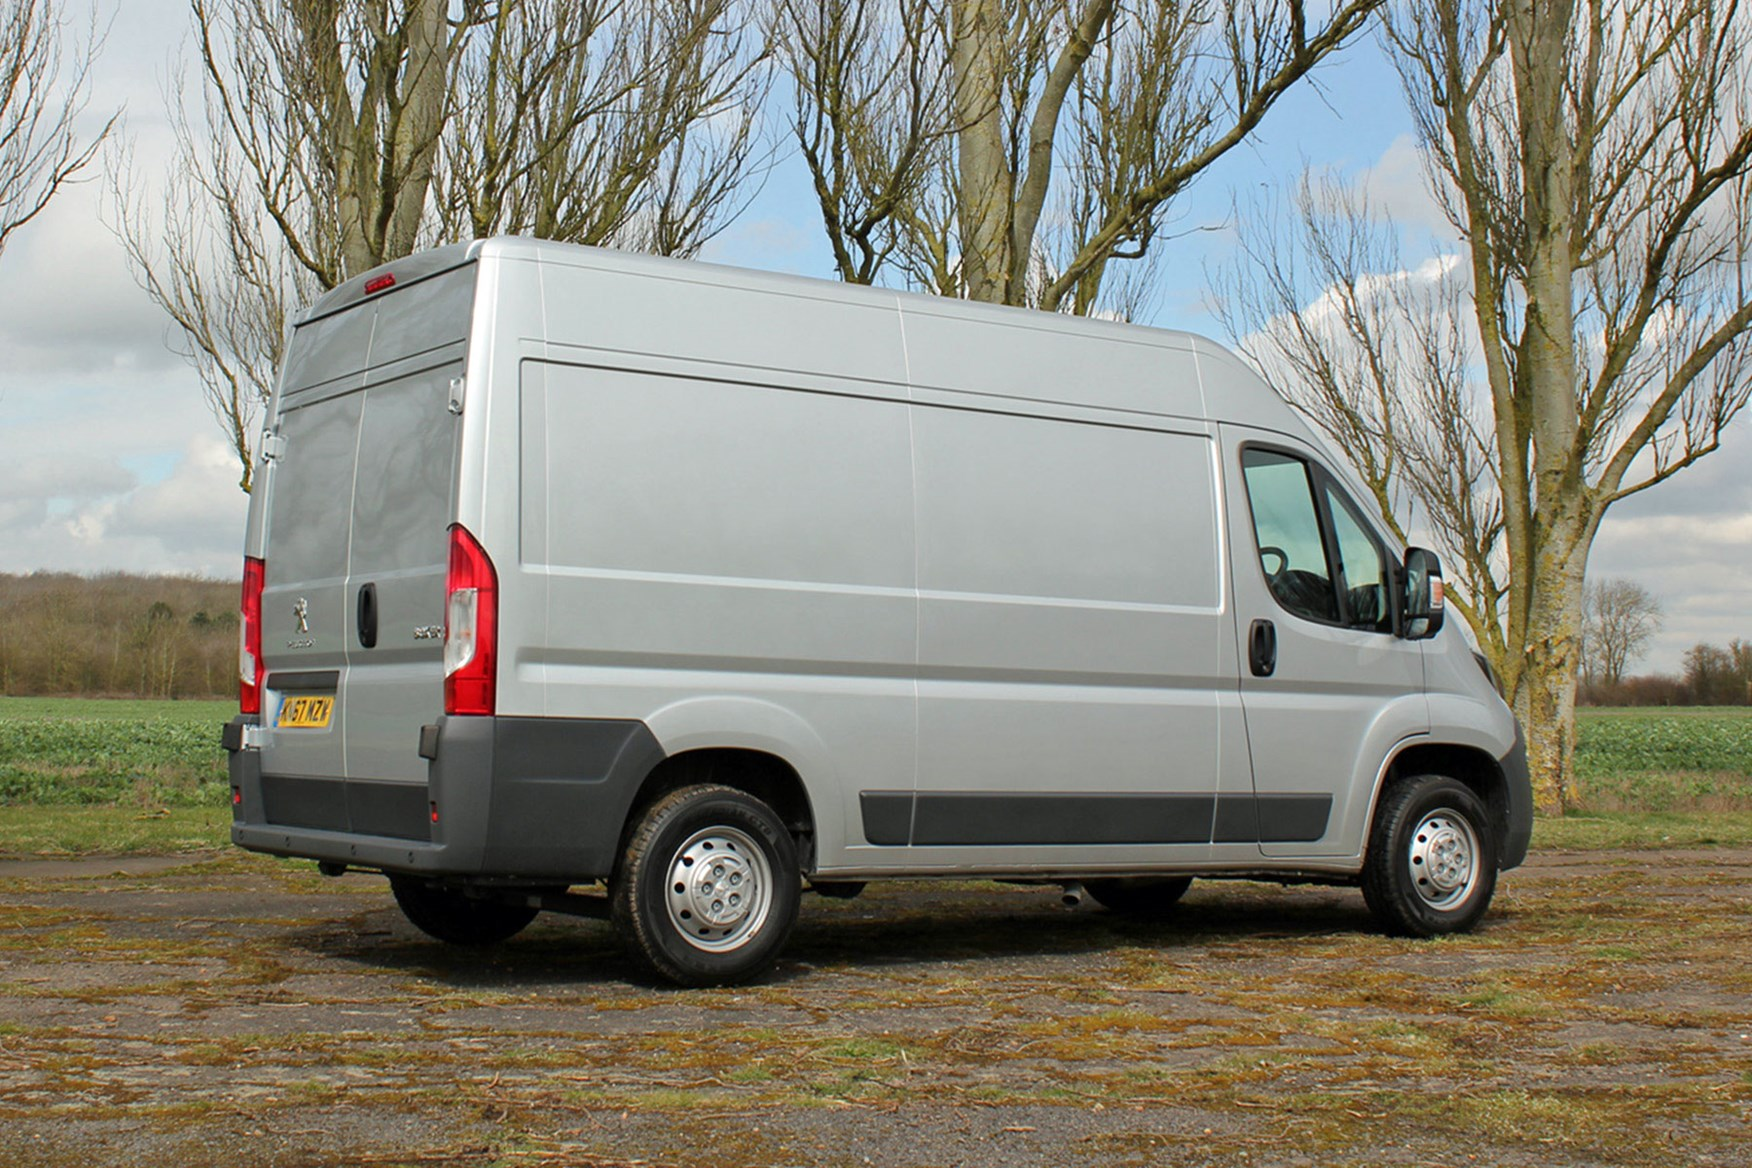 Peugeot Boxer review - rear view, silver